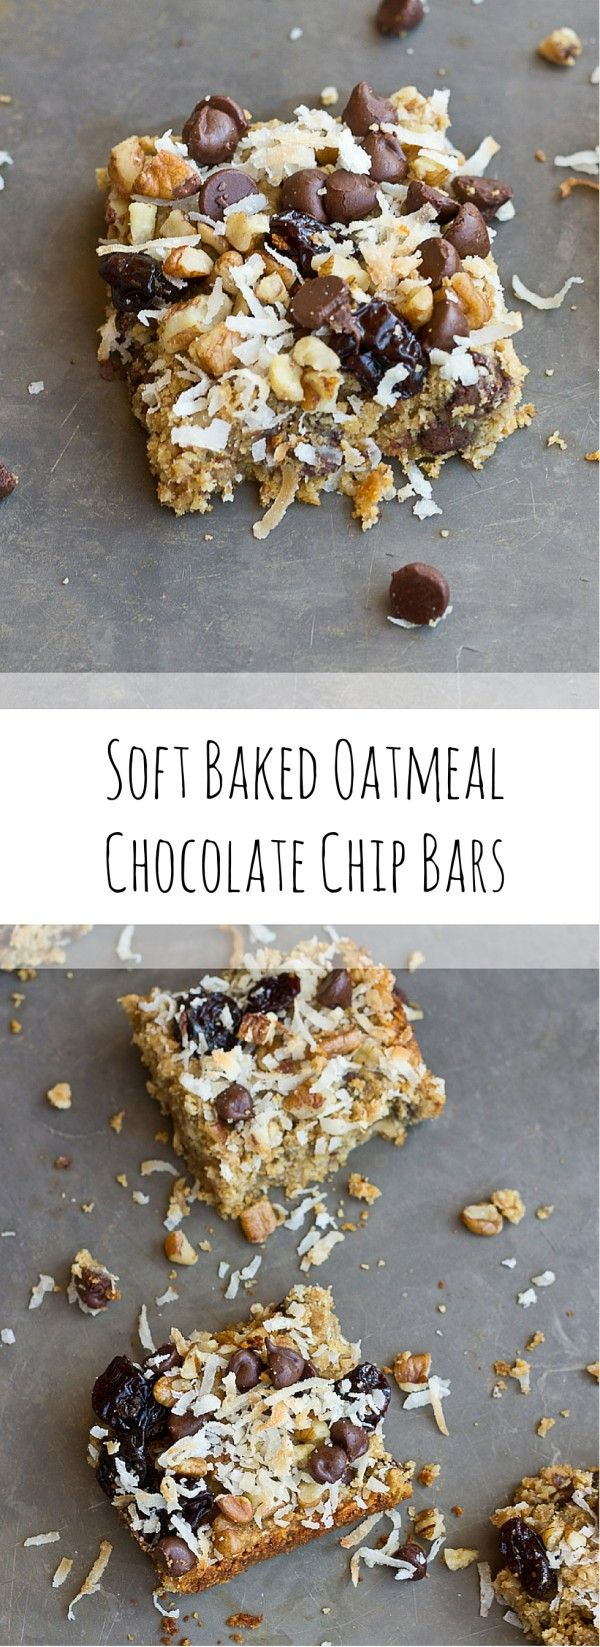 These Soft Baked Oatmeal Chocolate Chip Bars are soooooft and oooh so gooooewy. Healthy enough for a breakfast bar or enjoy as snack or…